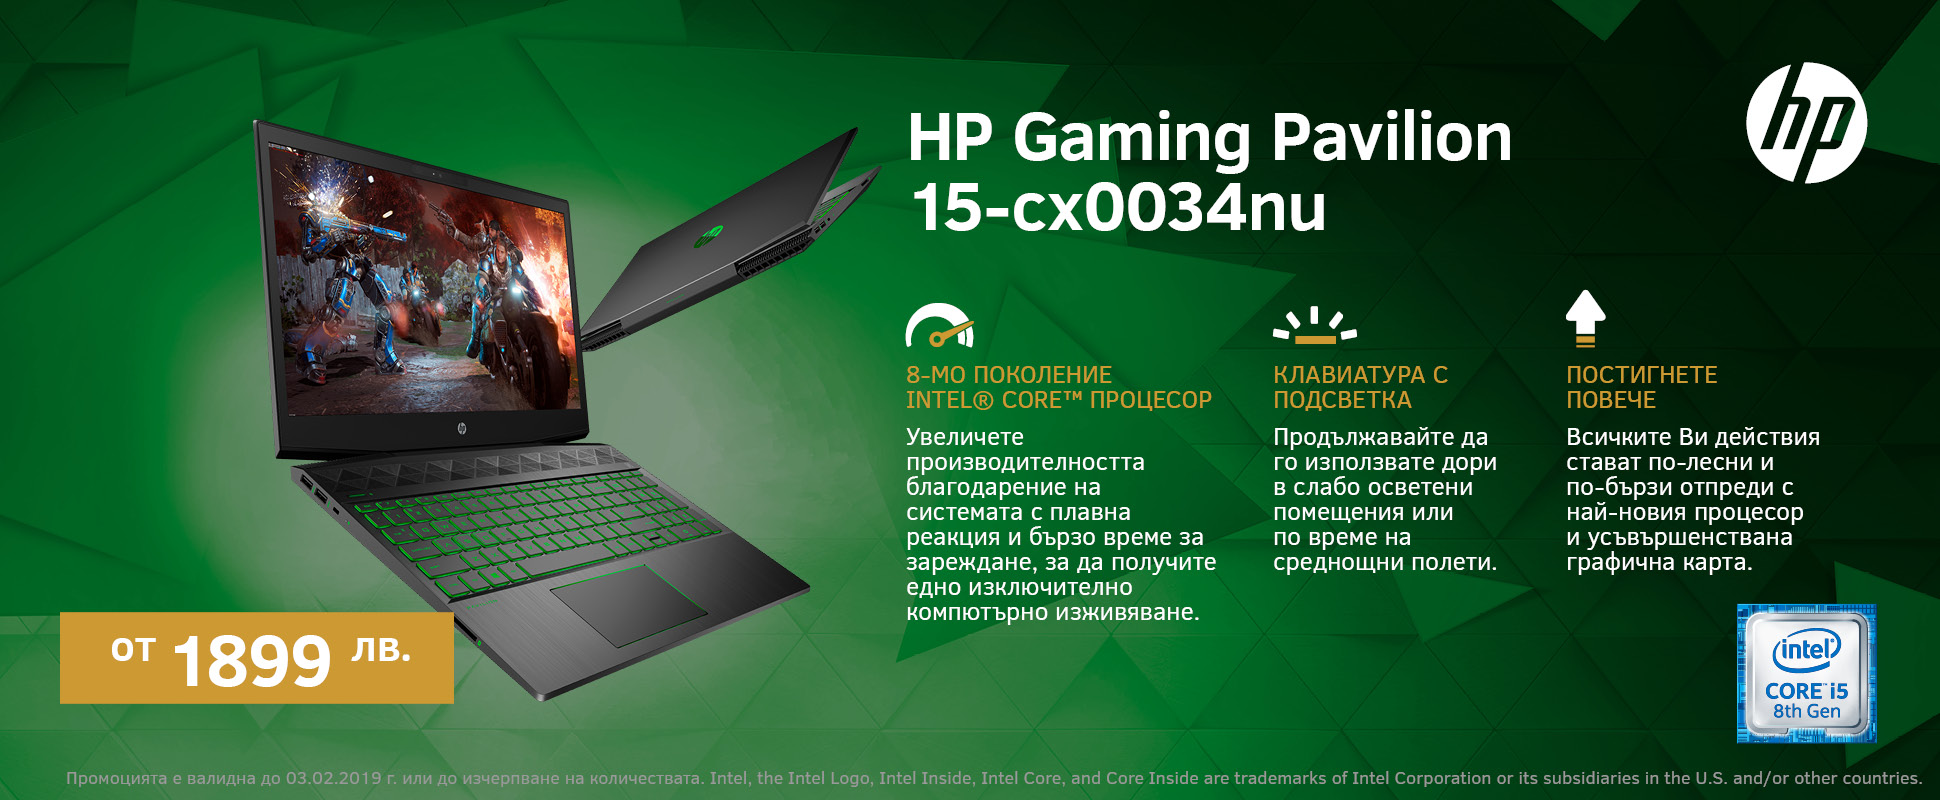 1940x800 pcshop slider hp pavilion intel 01.2019 v2.1.jpg